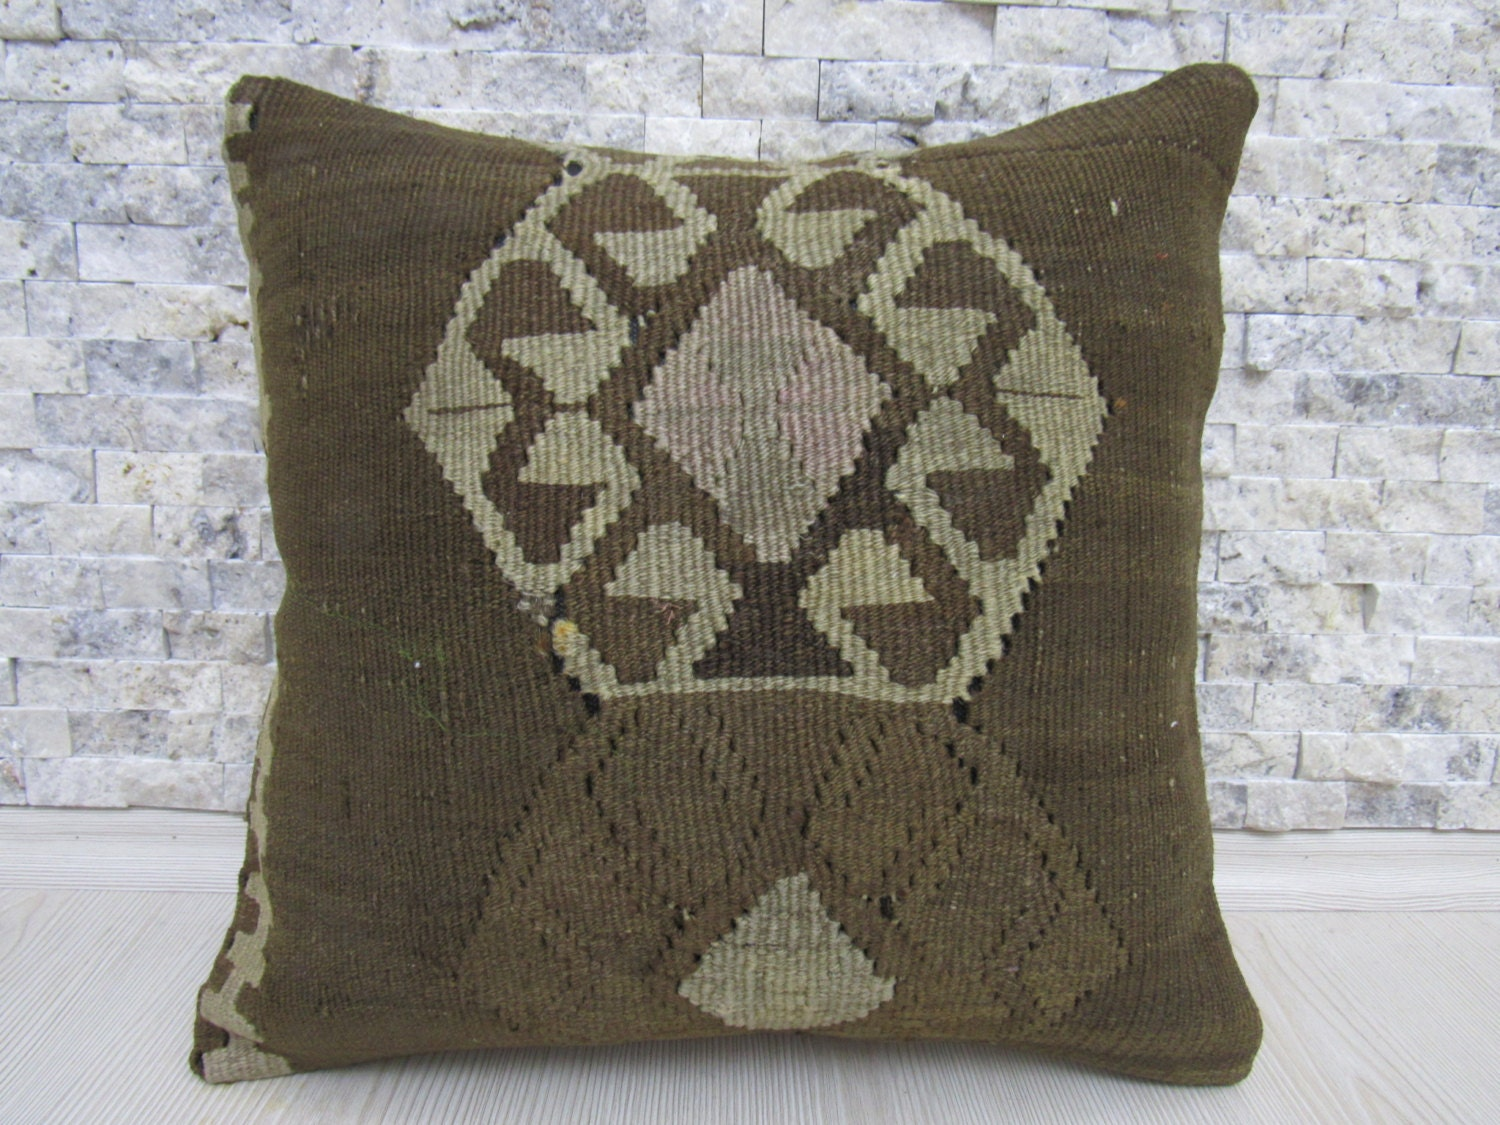 Modern Kilim Pillows : Decorative Modern Kilim Pillow 16 x 16 Bedding